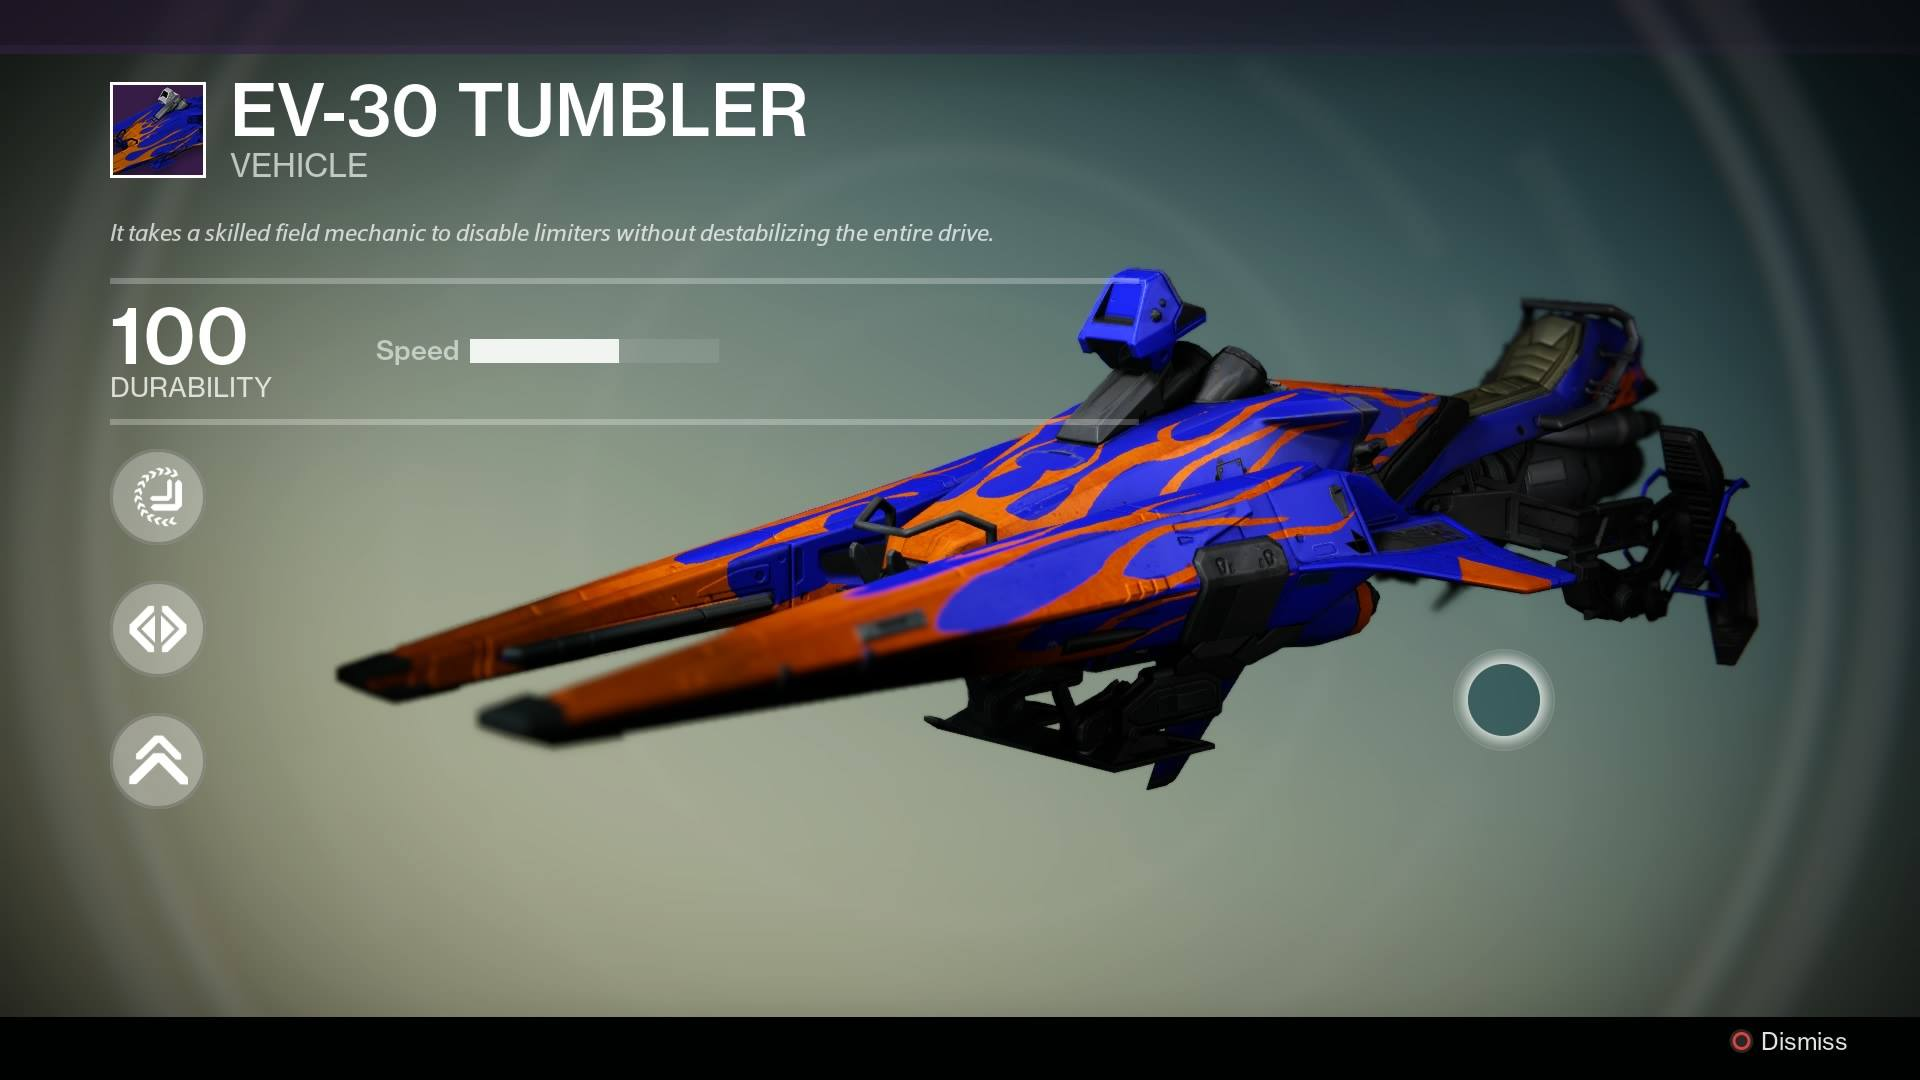 Destiny buy the dark below before january 15 to receive the tumbler